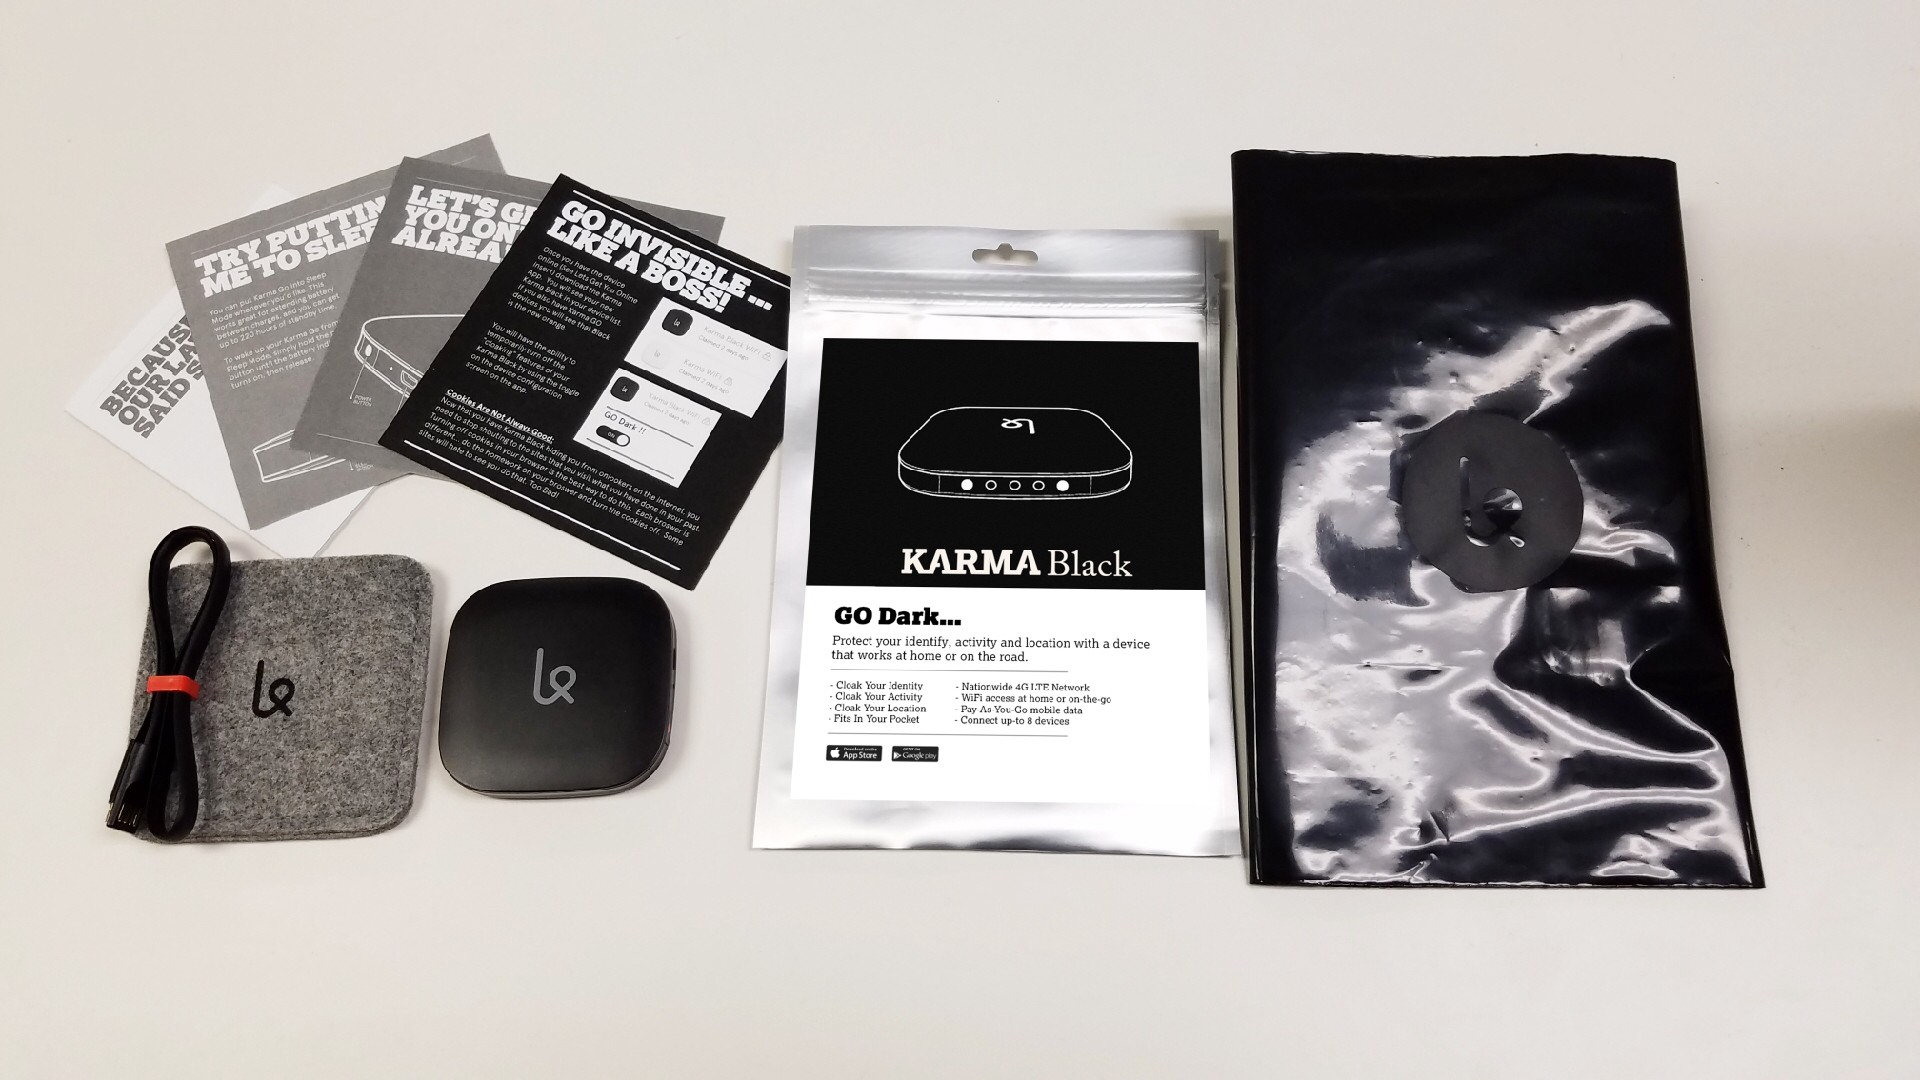 Karma Black is Shipping! - Spread the WiFi — The Official